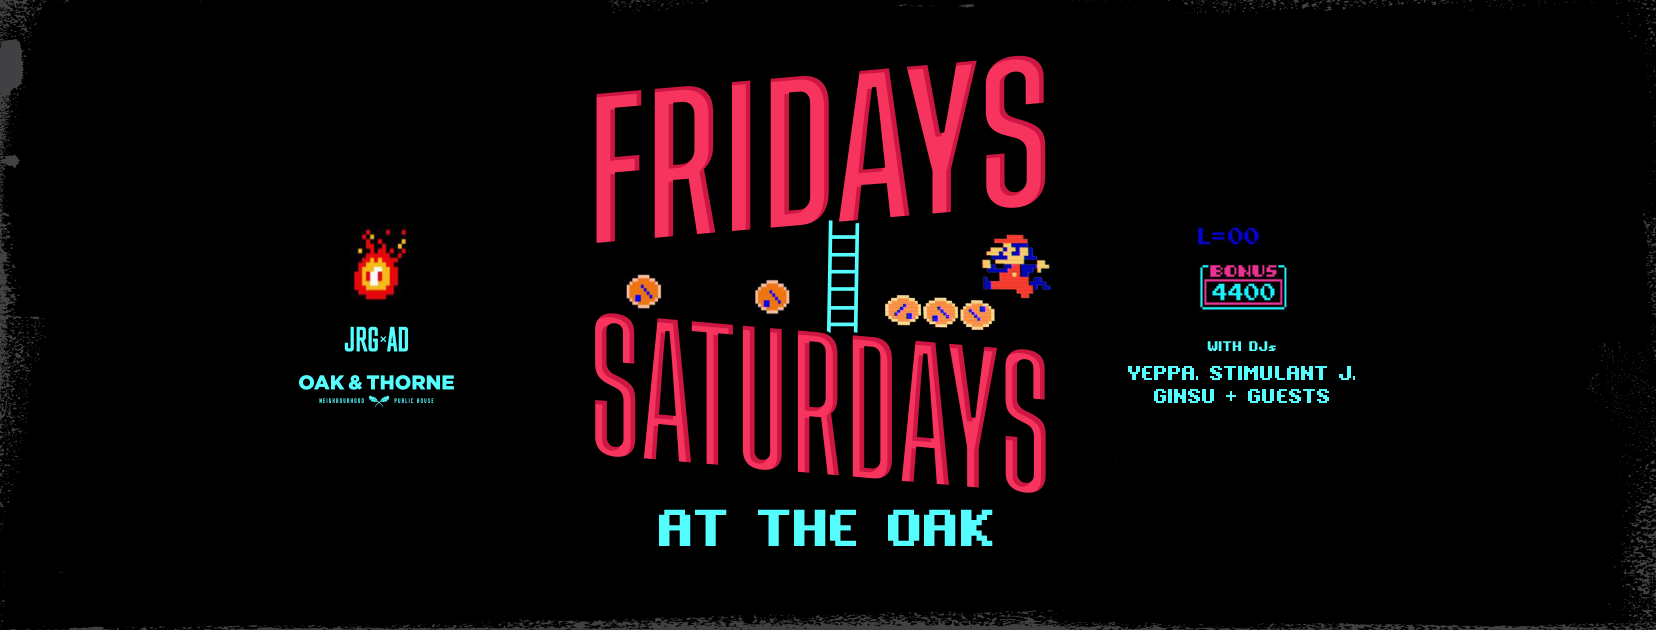 Fridays Saturdays at The Oak